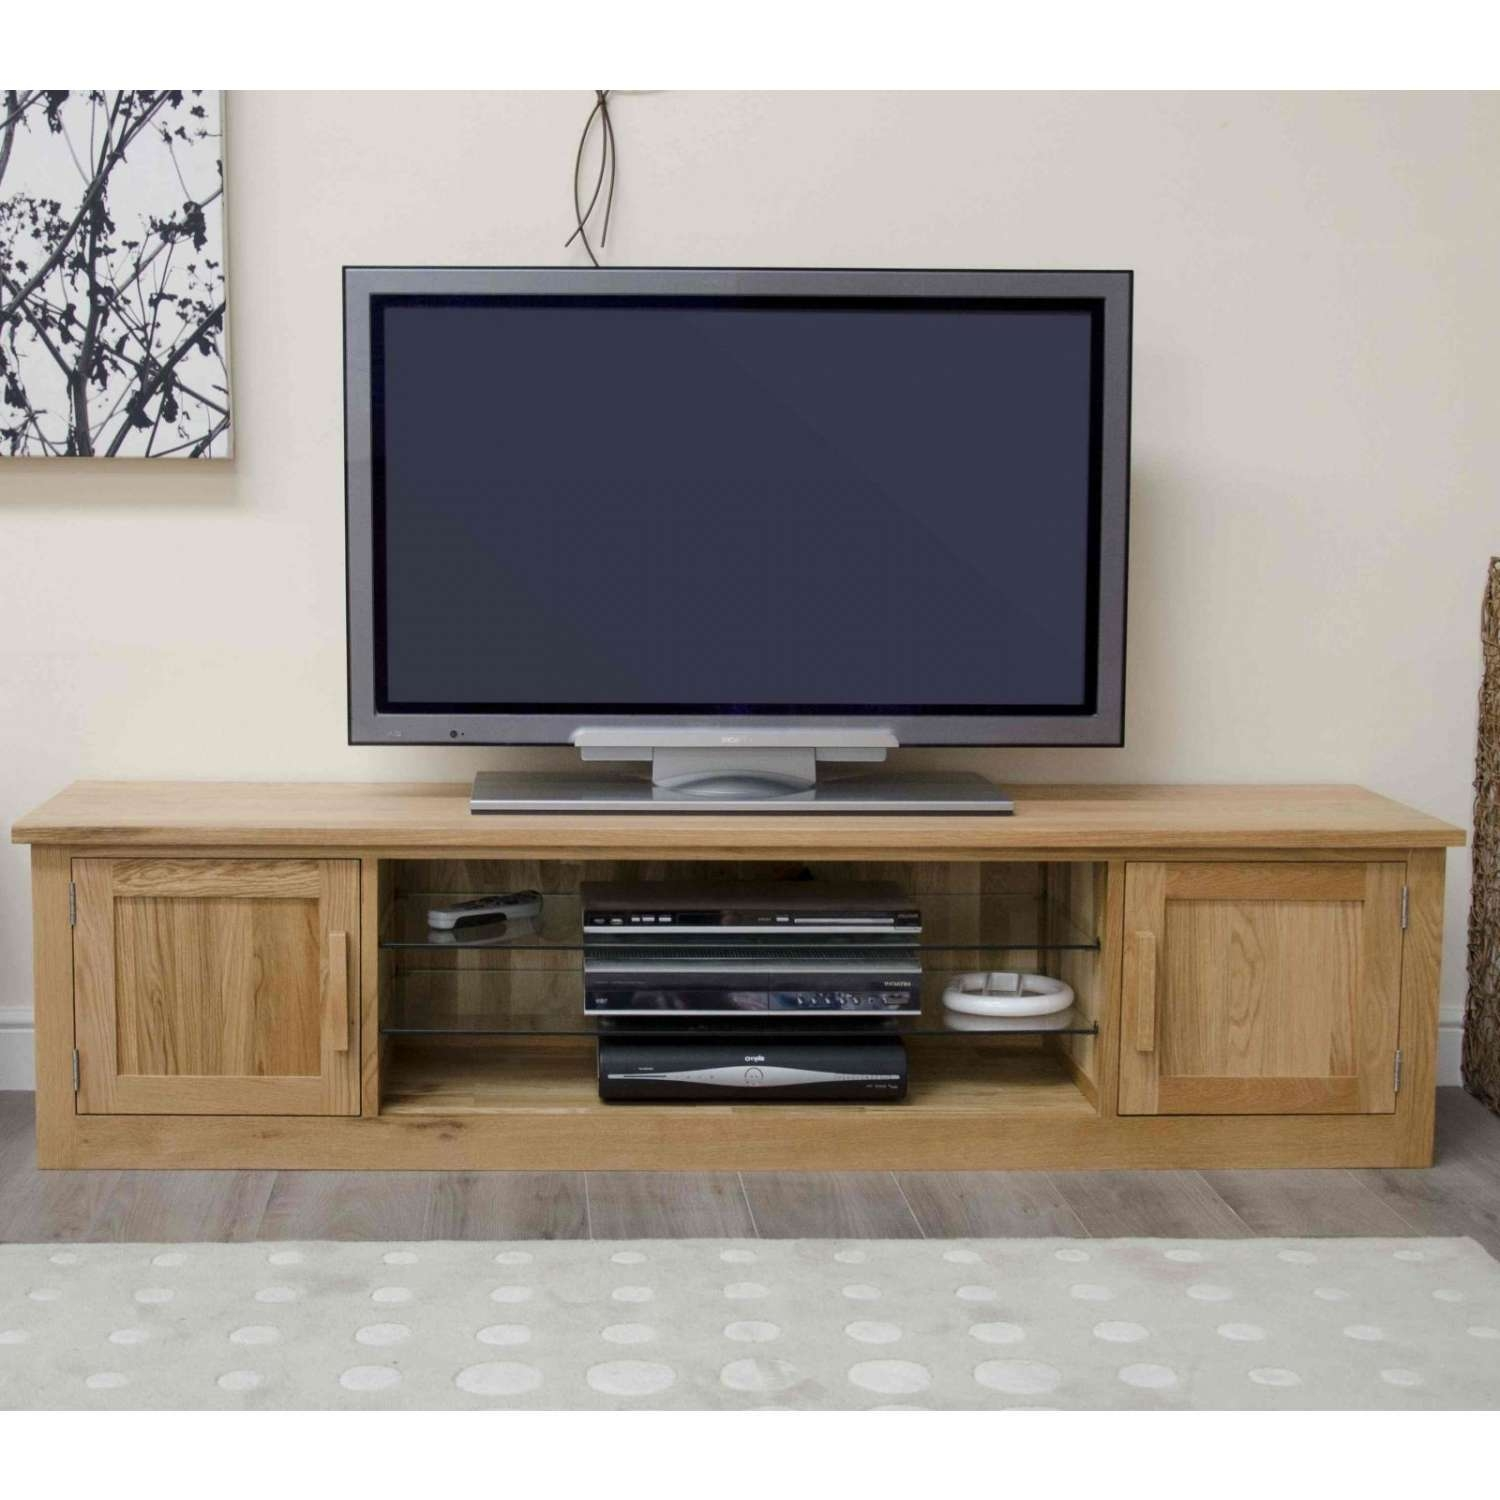 Arden Solid Oak Living Room Furniture Large Widescreen Tv Cabinet Regarding Large Tv Cabinets (View 1 of 20)